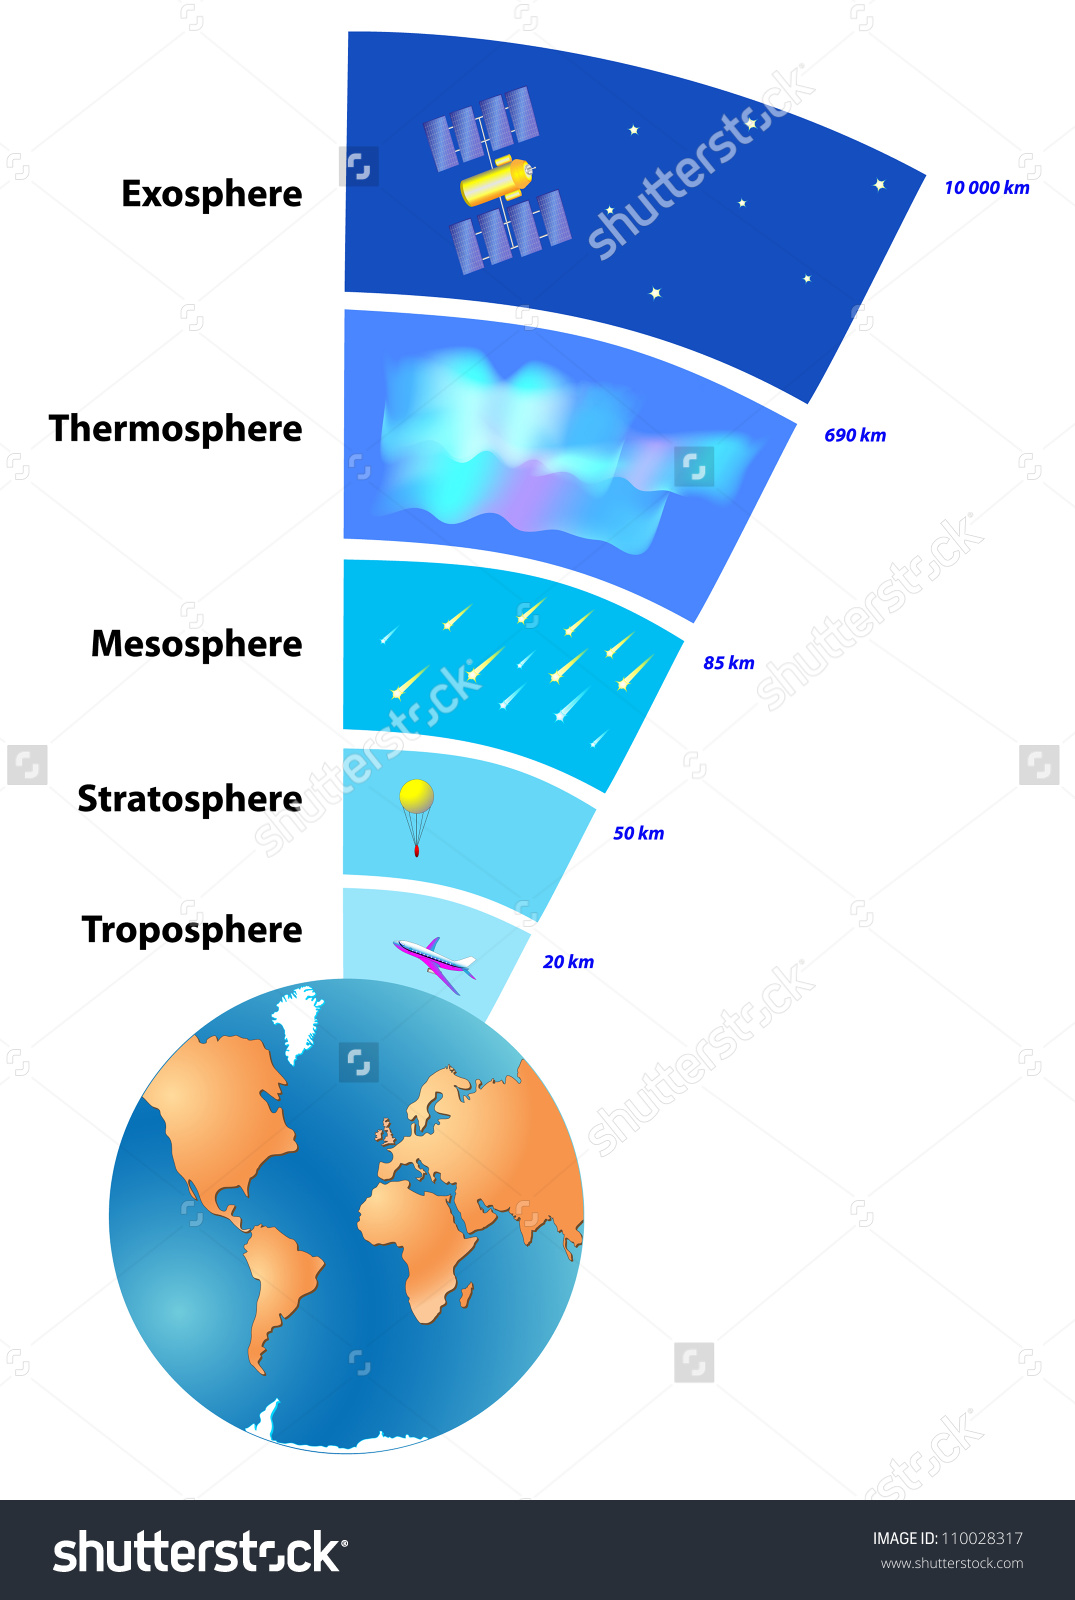 Earth's atmosphere clipart.